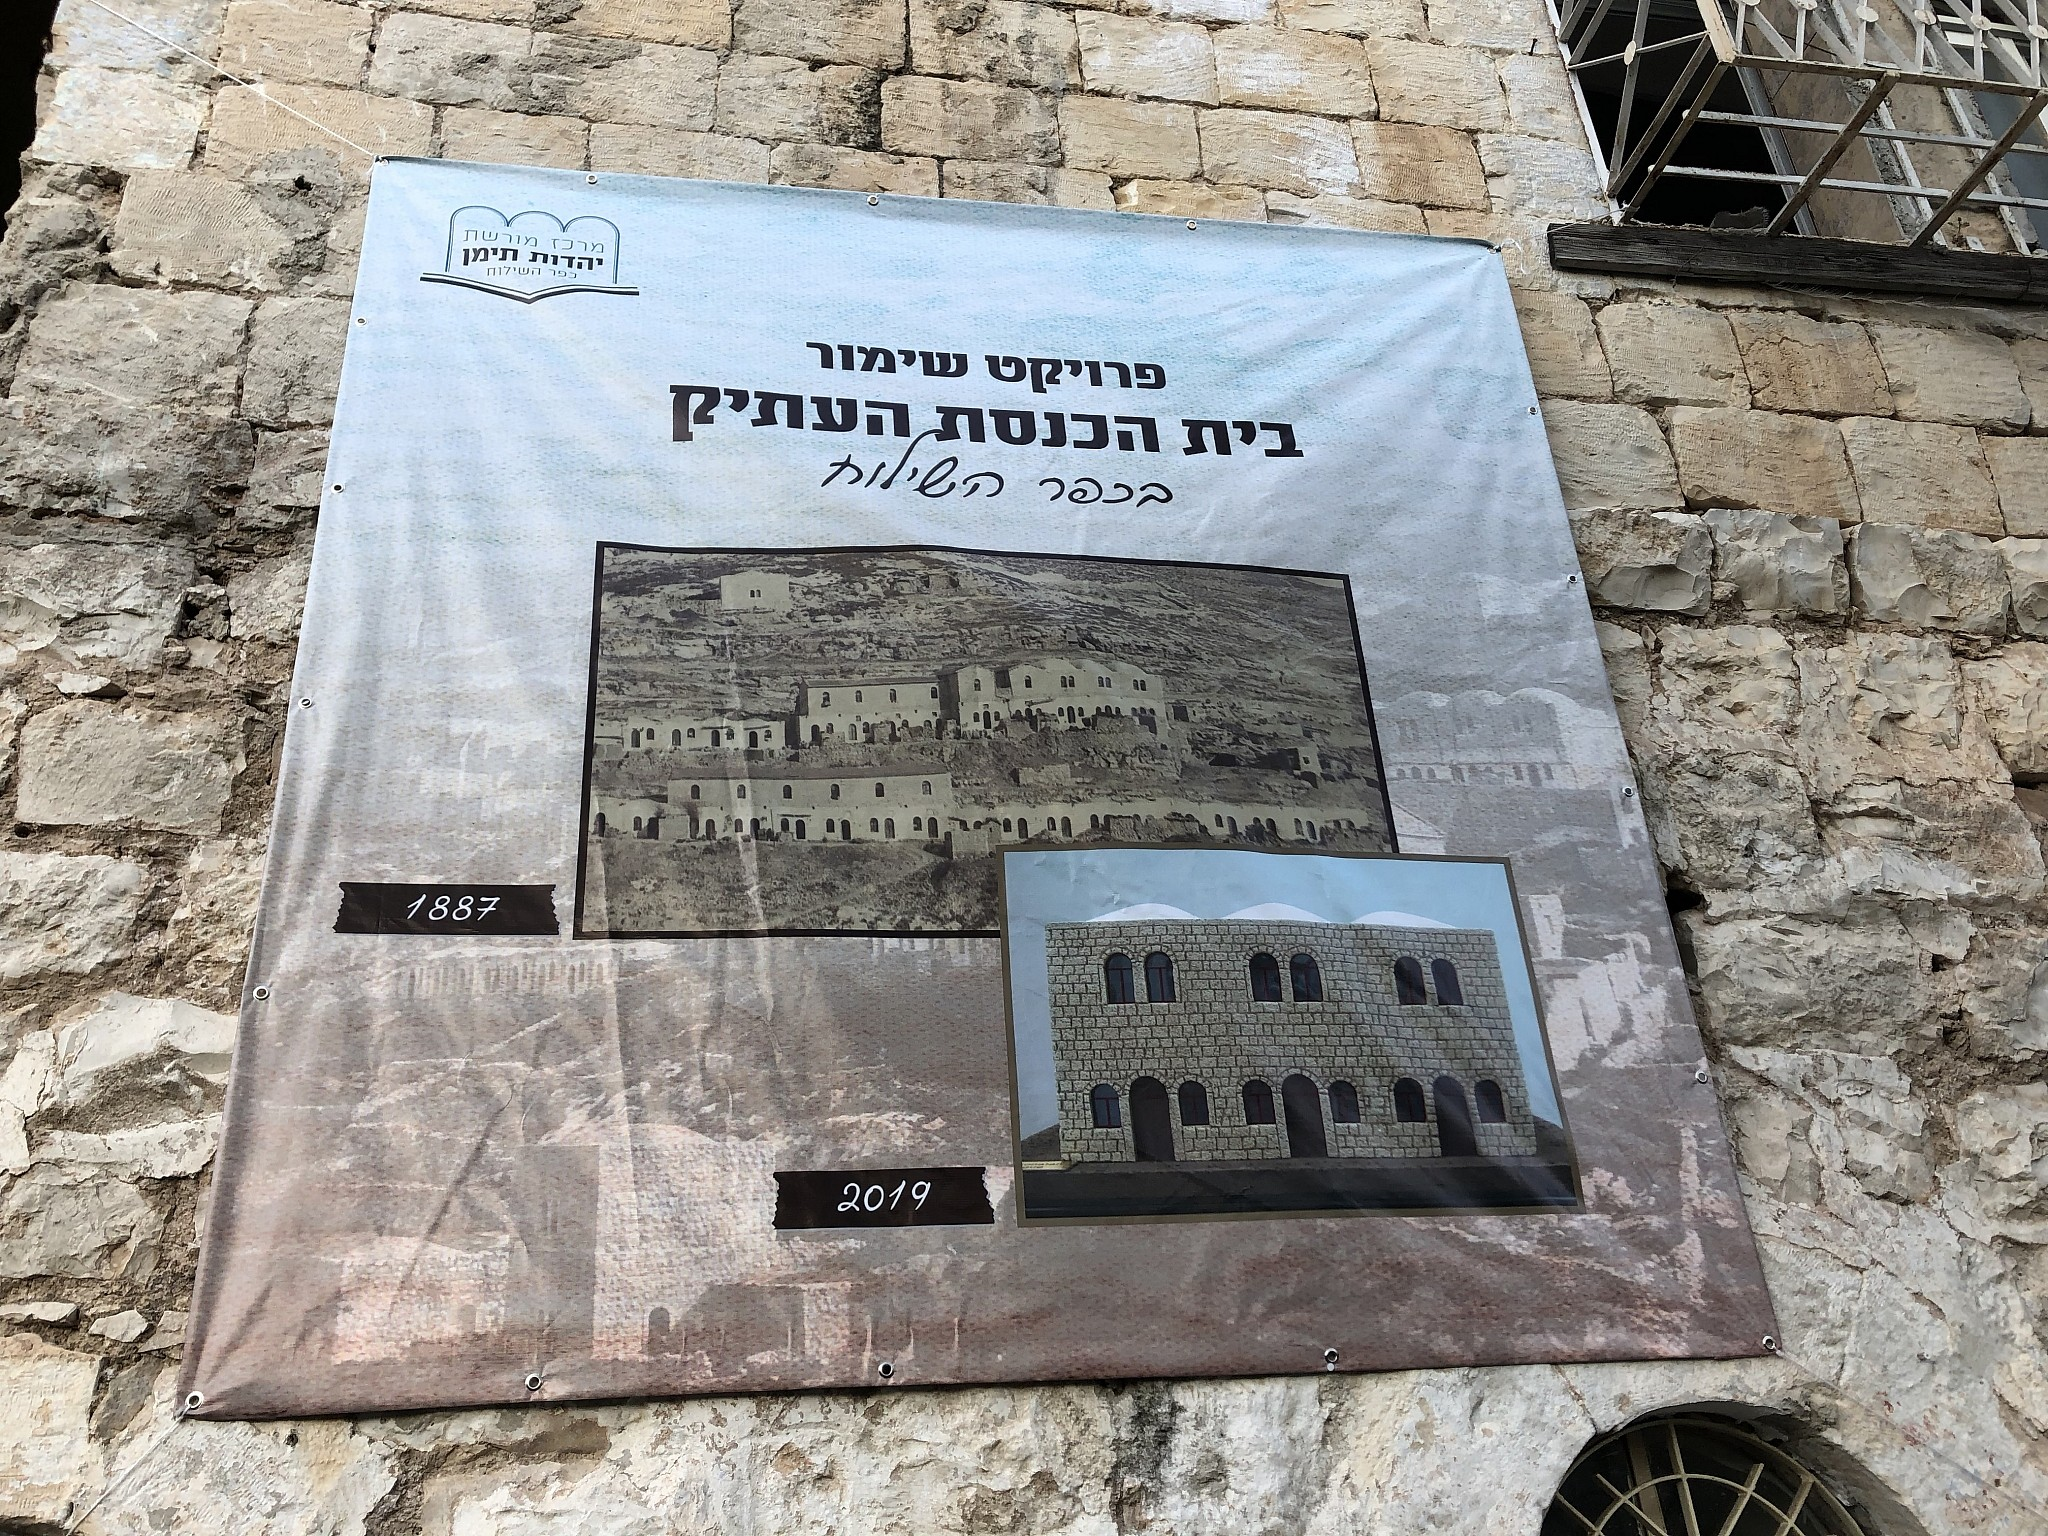 Jewish Yemeni heritage center launched in heart of Arab East